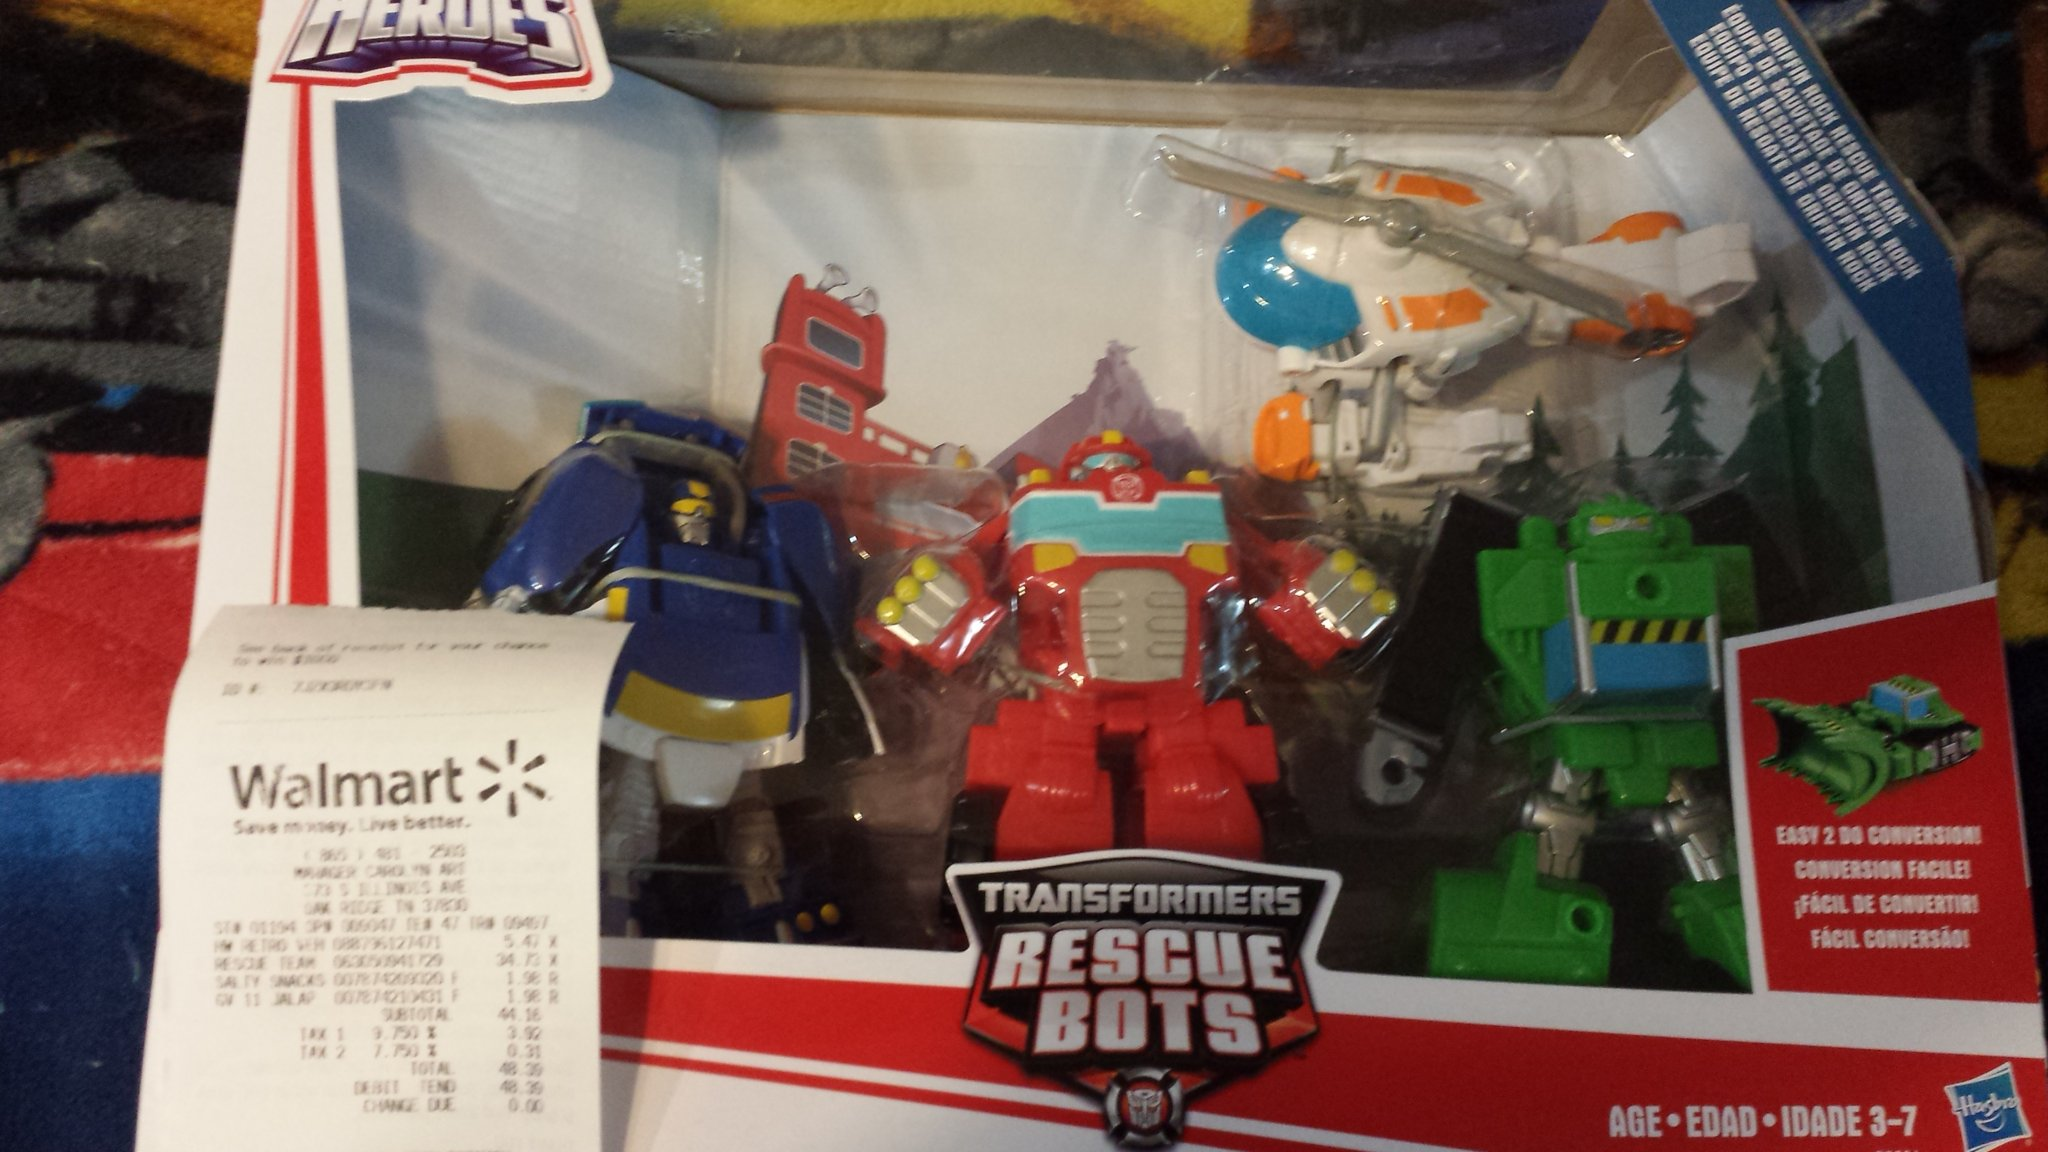 Good Transformers Rescue Bots Griffin Rock Rescue Team Gift Set Found In US  Retail   Cybertron.CA   Canadian Transformers News And Discussion